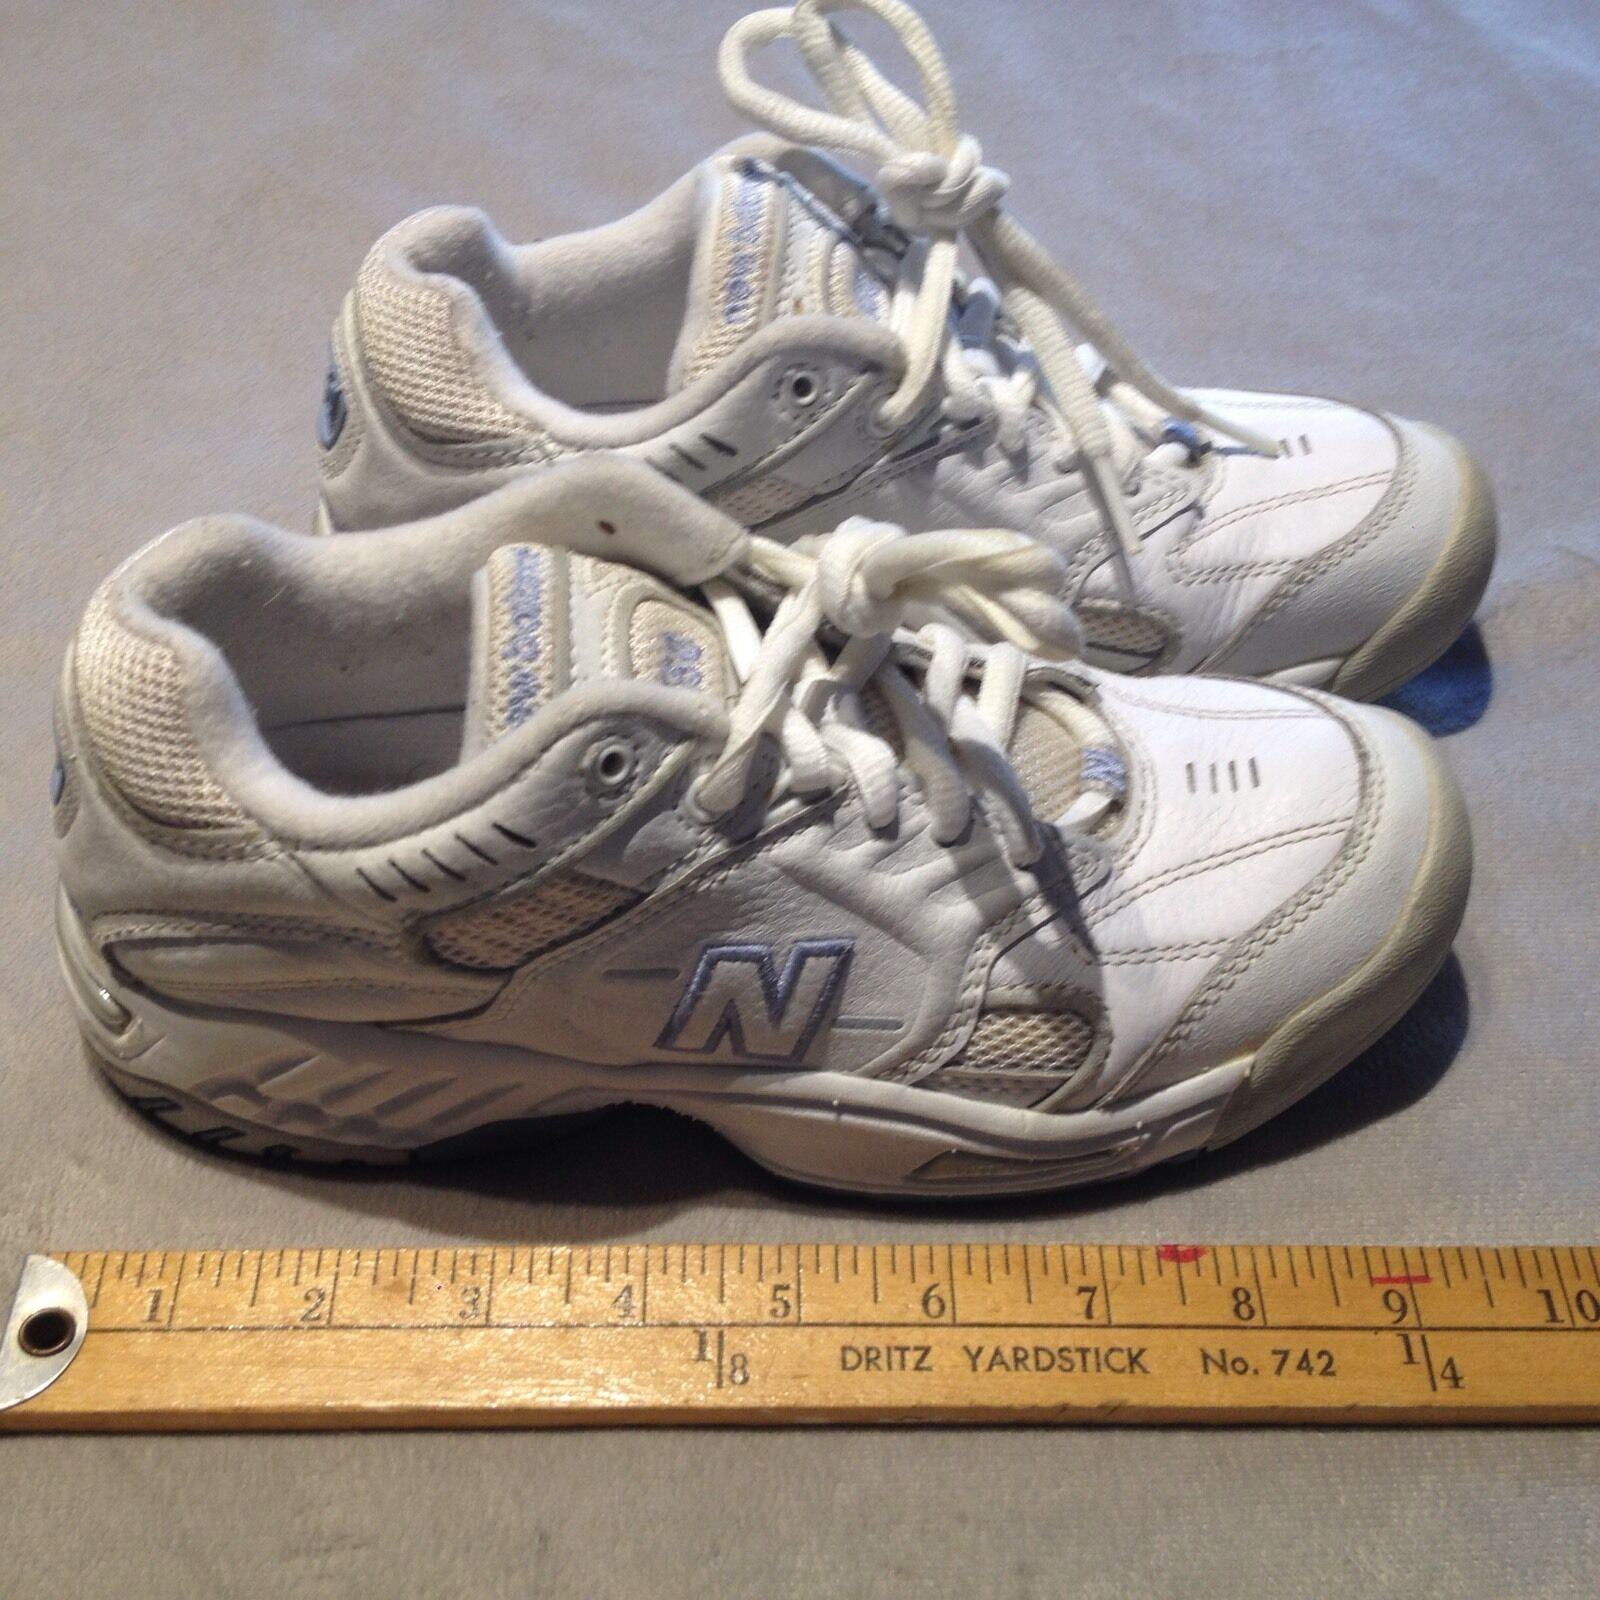 NEW BALANCE 650 Women's Leather Walking Lace-Up Sneaker shoes US 6 White